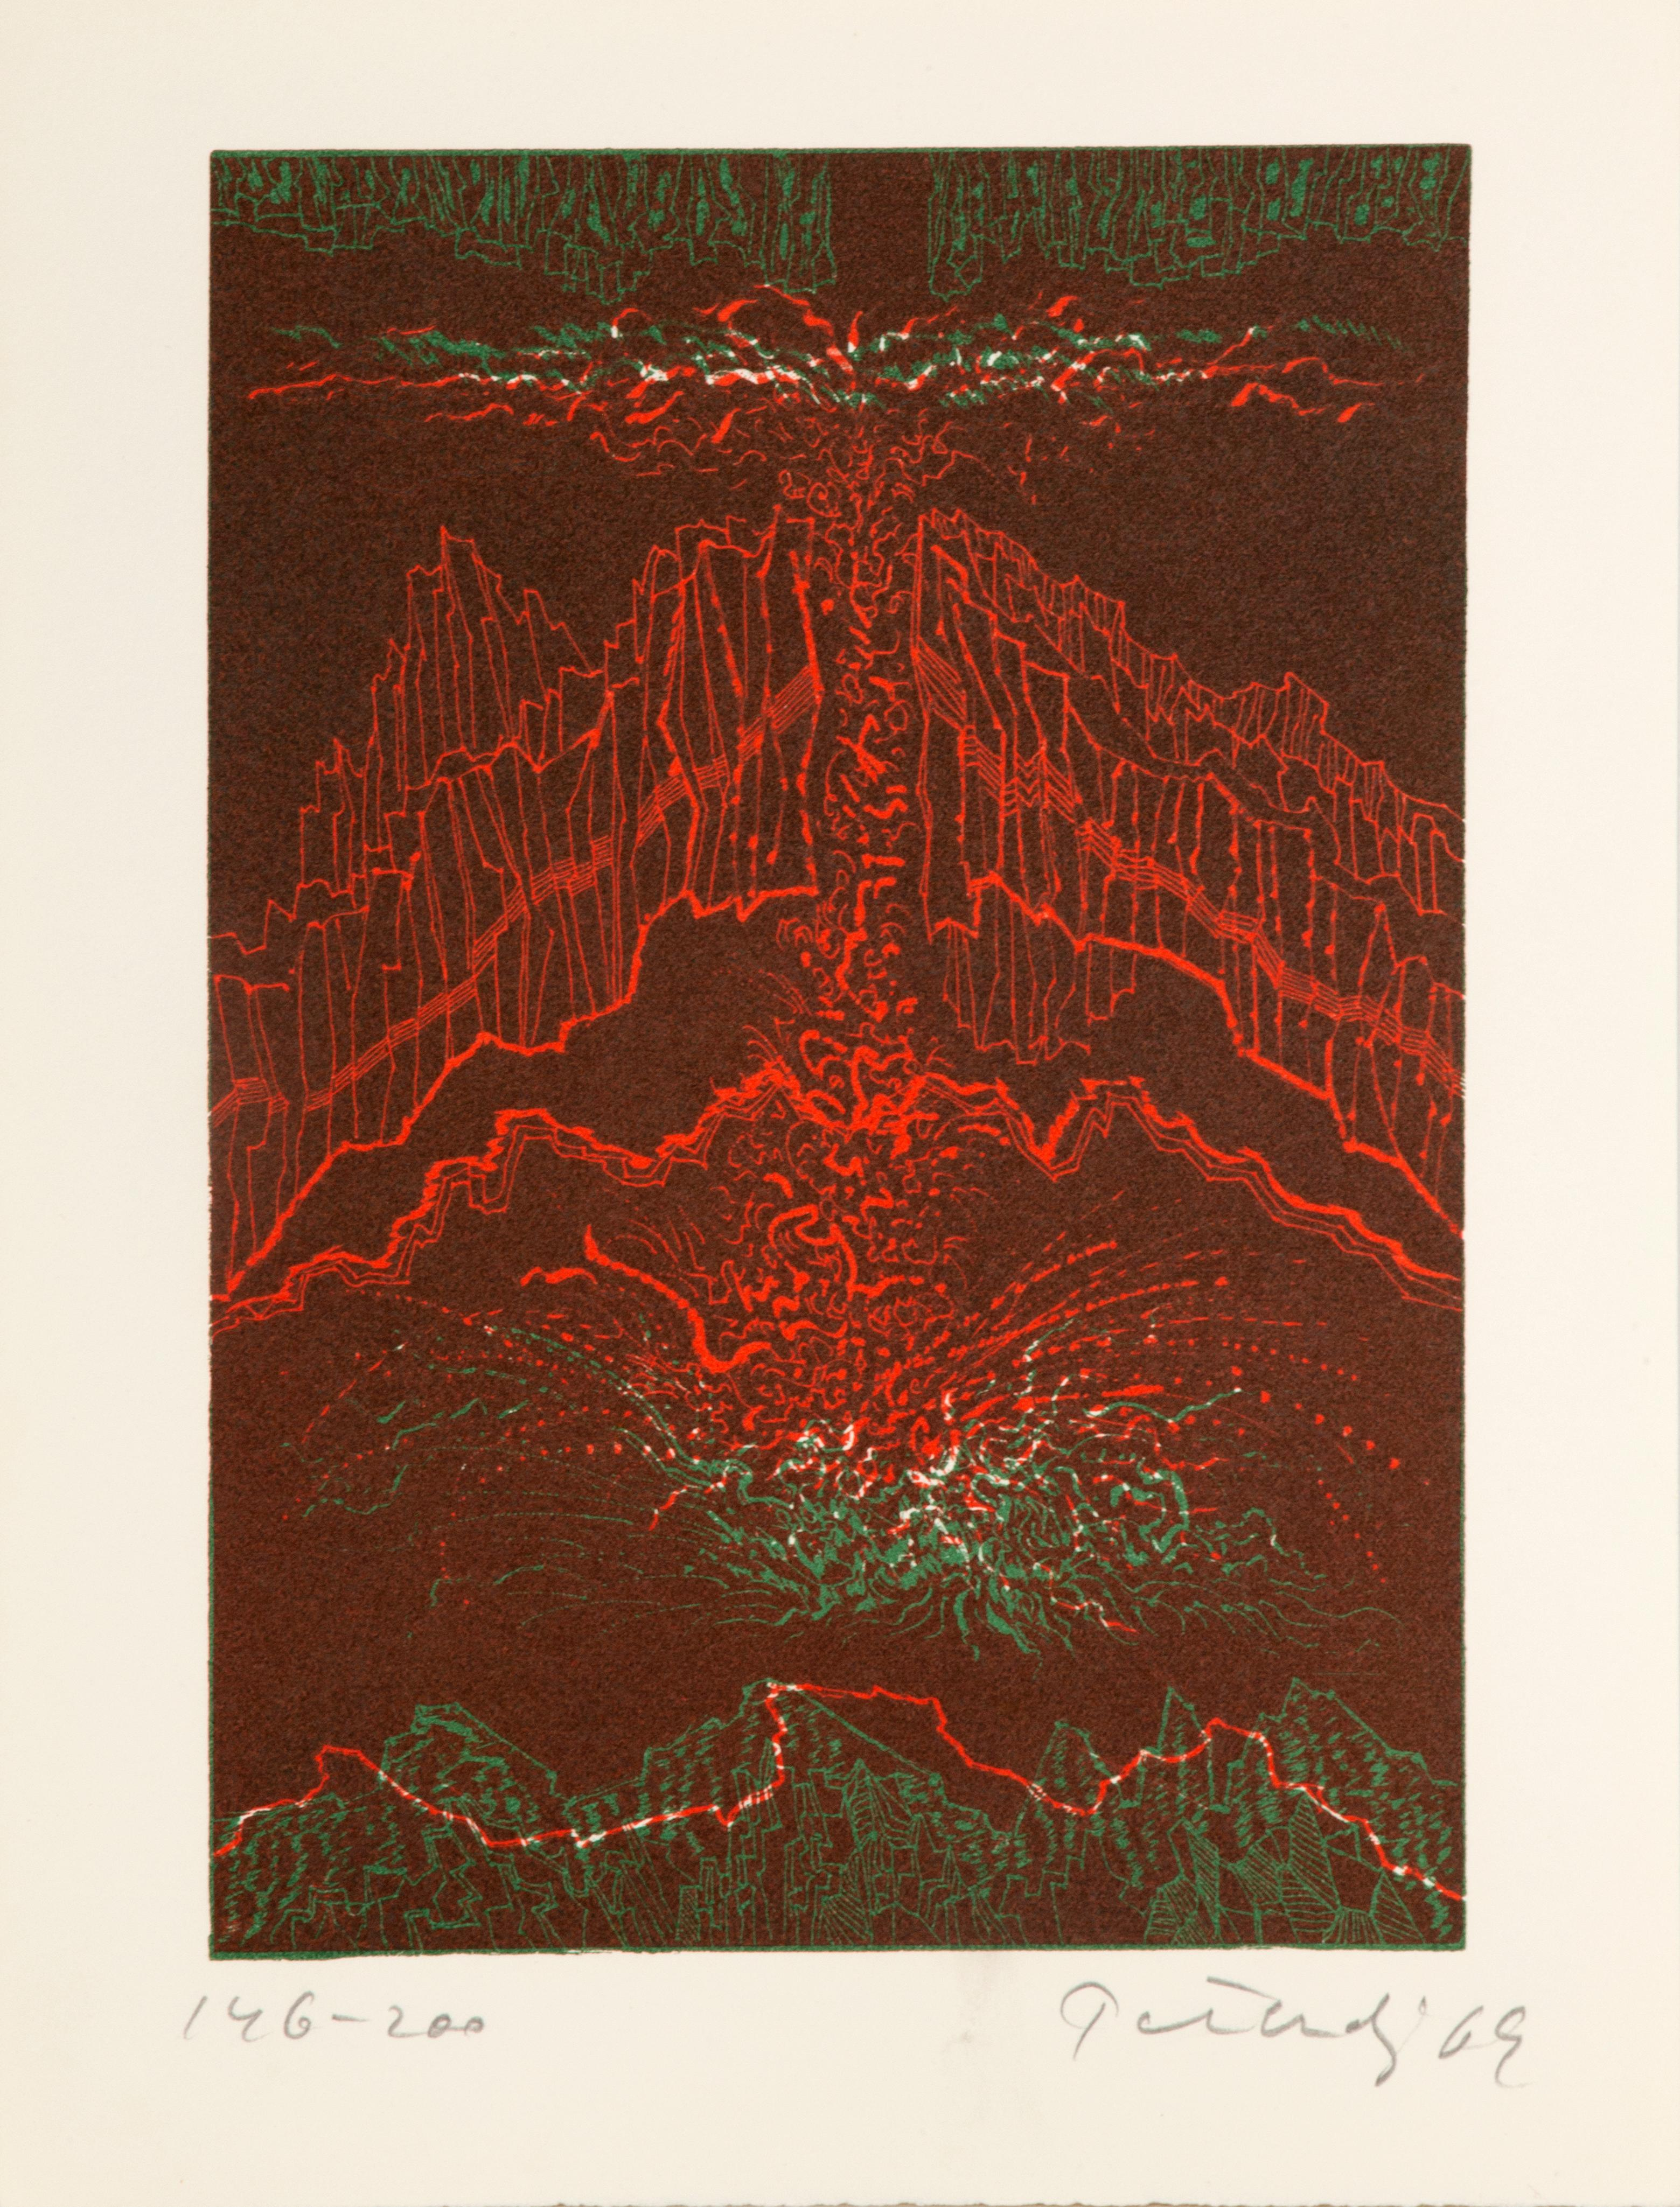 Hawaii, Abstract Etching by Gabor Peterdi